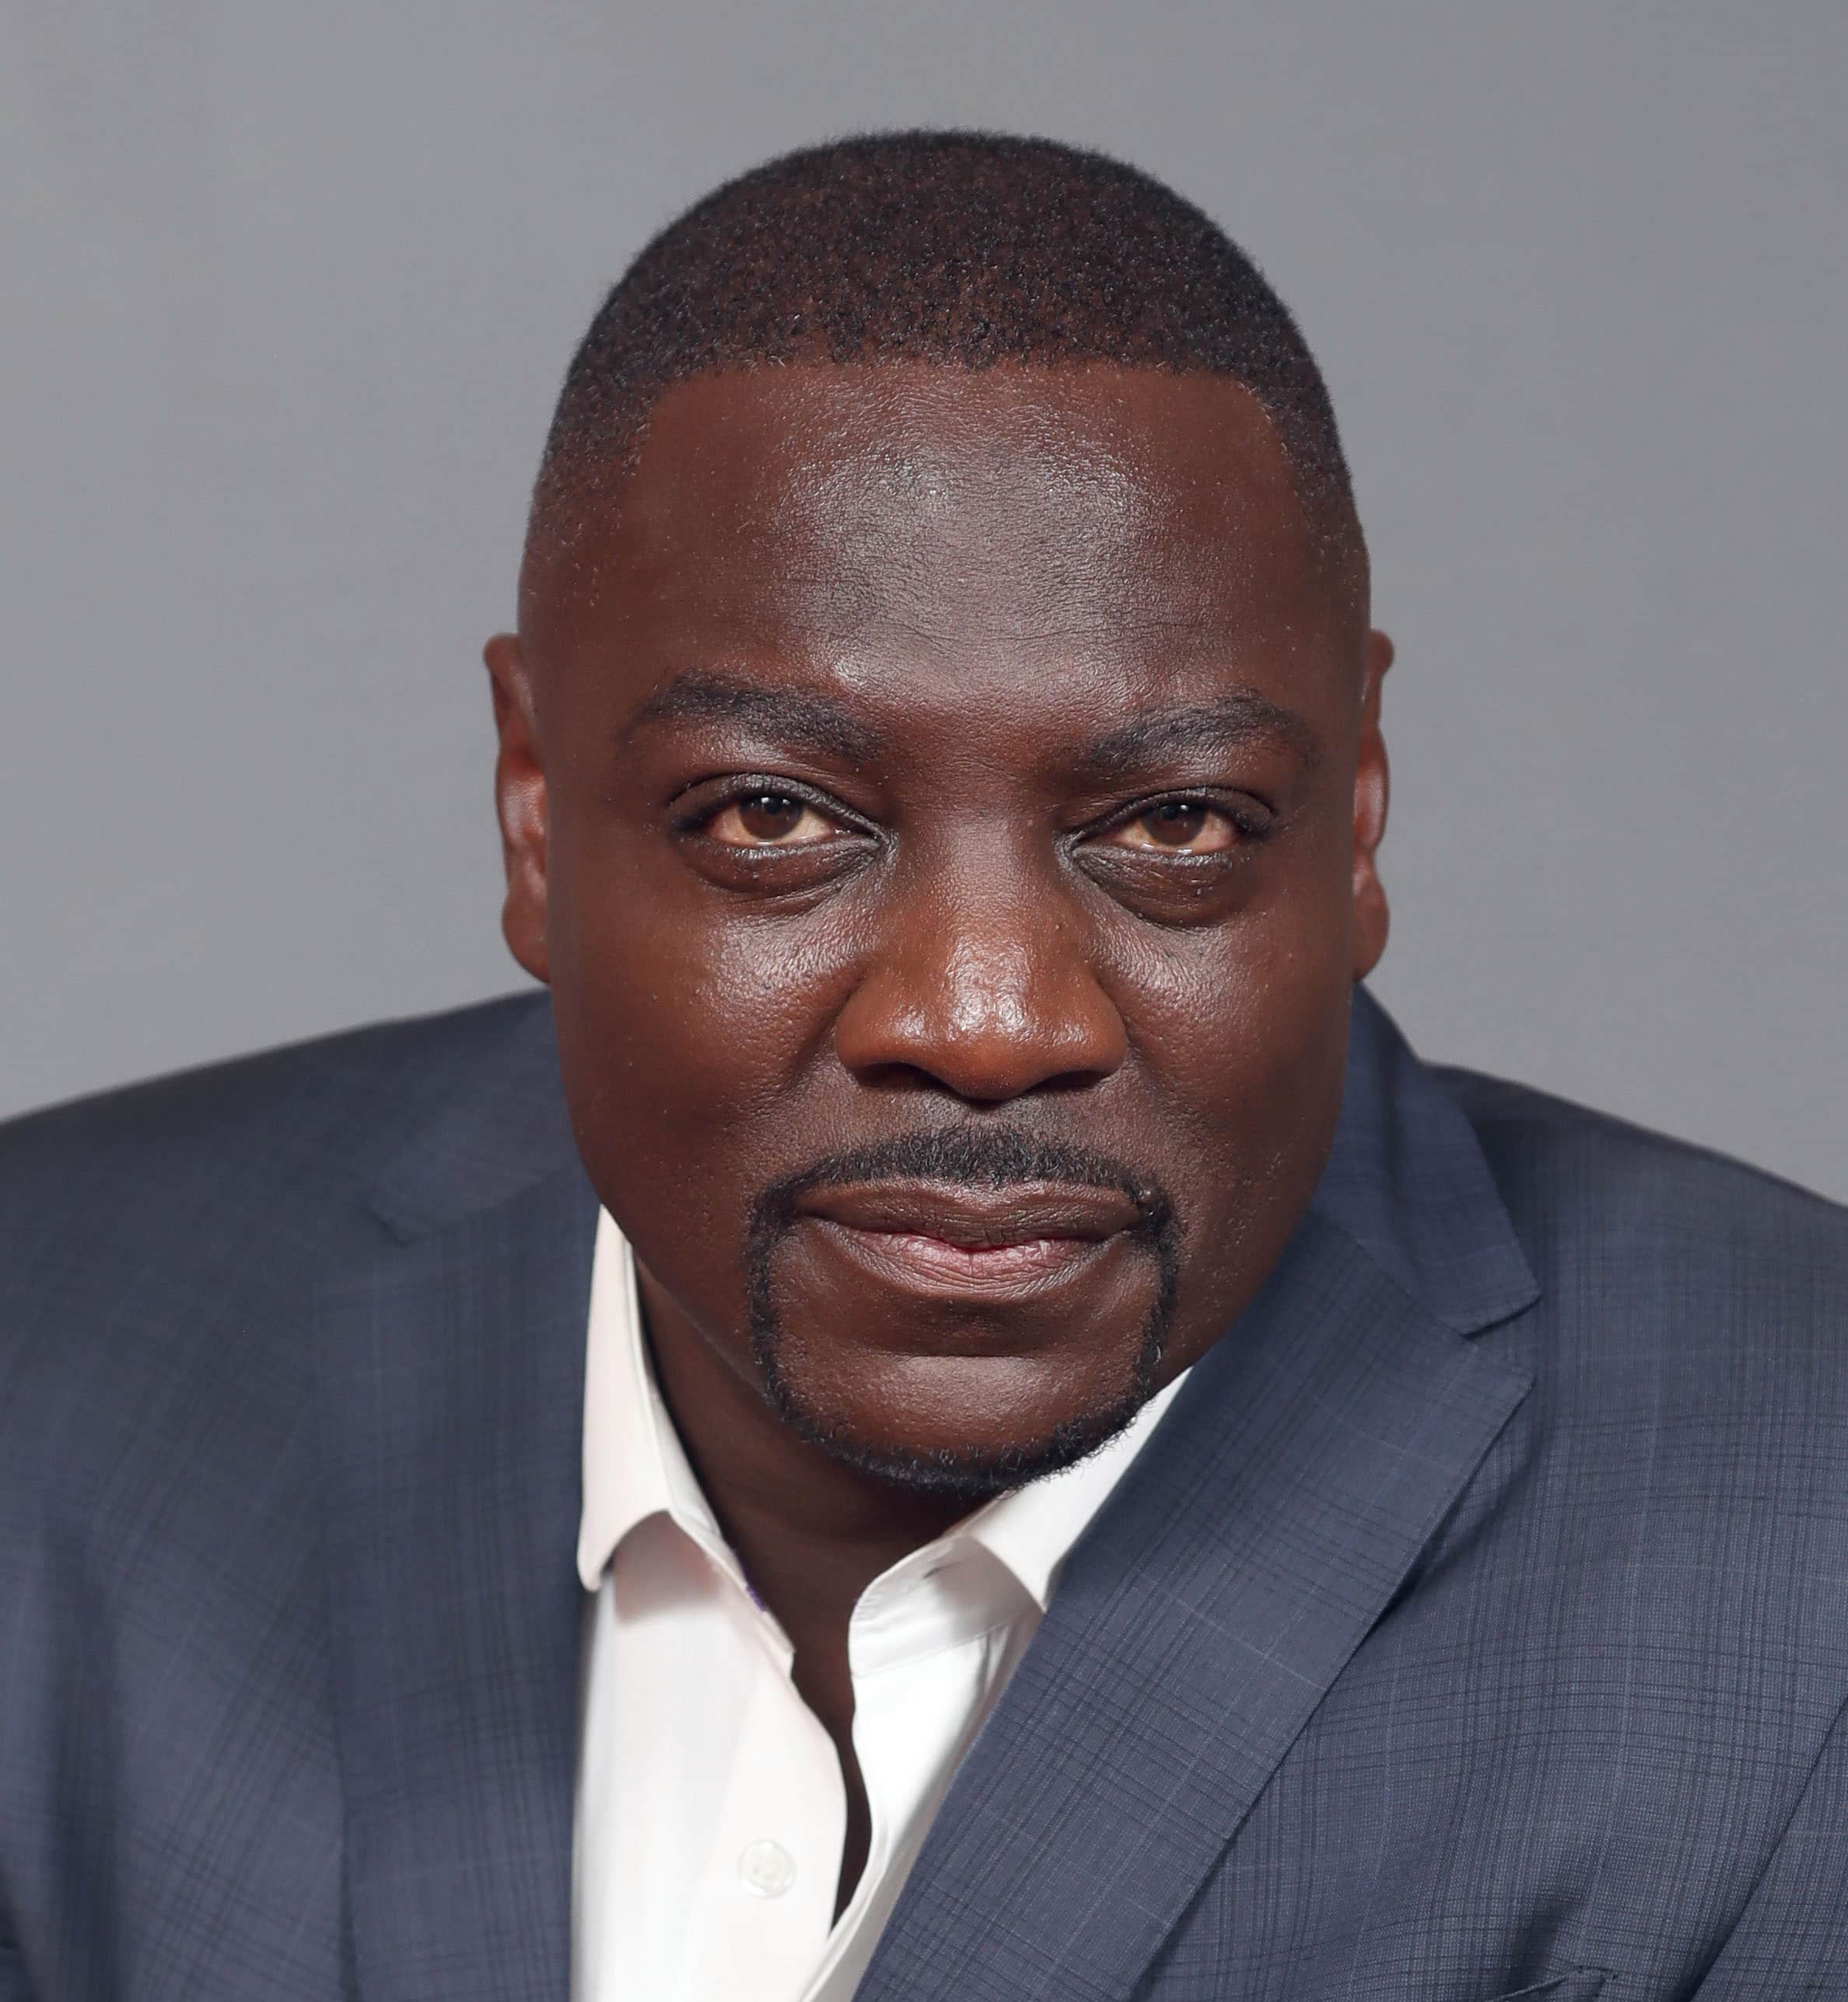 Adewale Akinnuoye-Agbaje Nigerian, British Actor, Director and Former Fashion Model